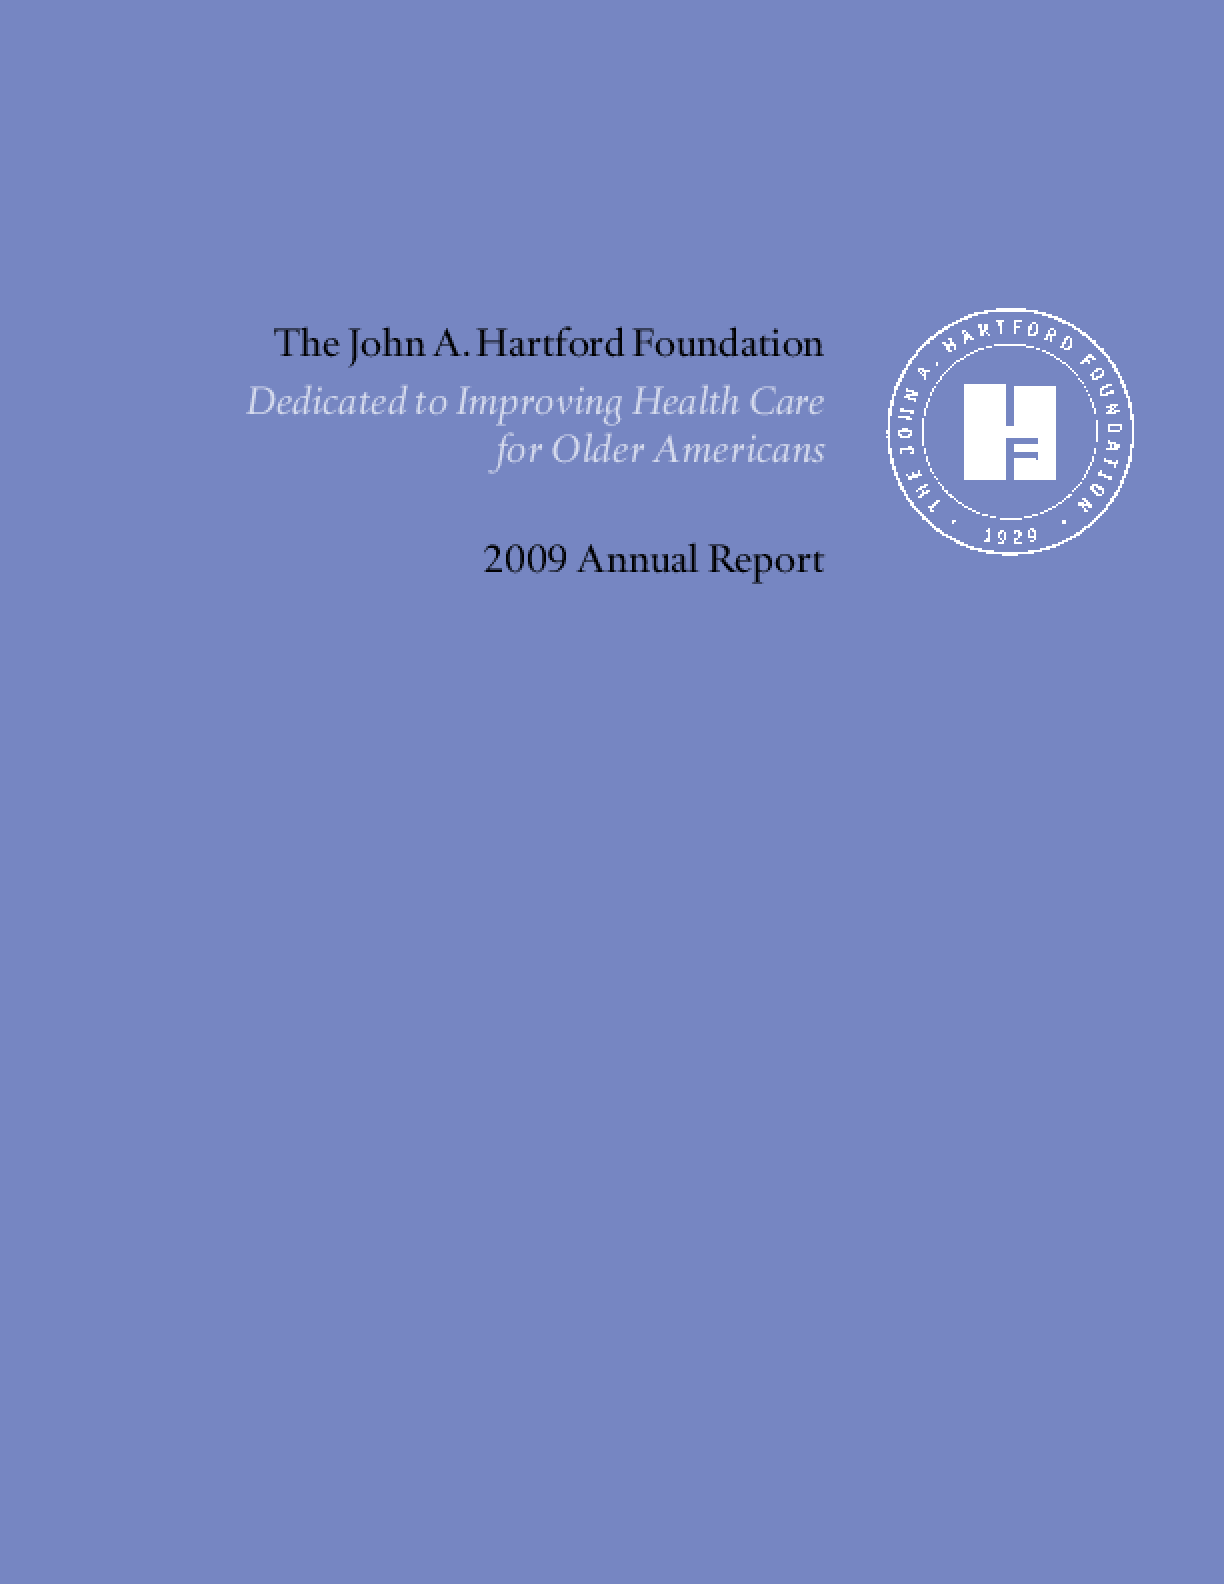 John A. Hartford Foundation - 2009 Annual Report